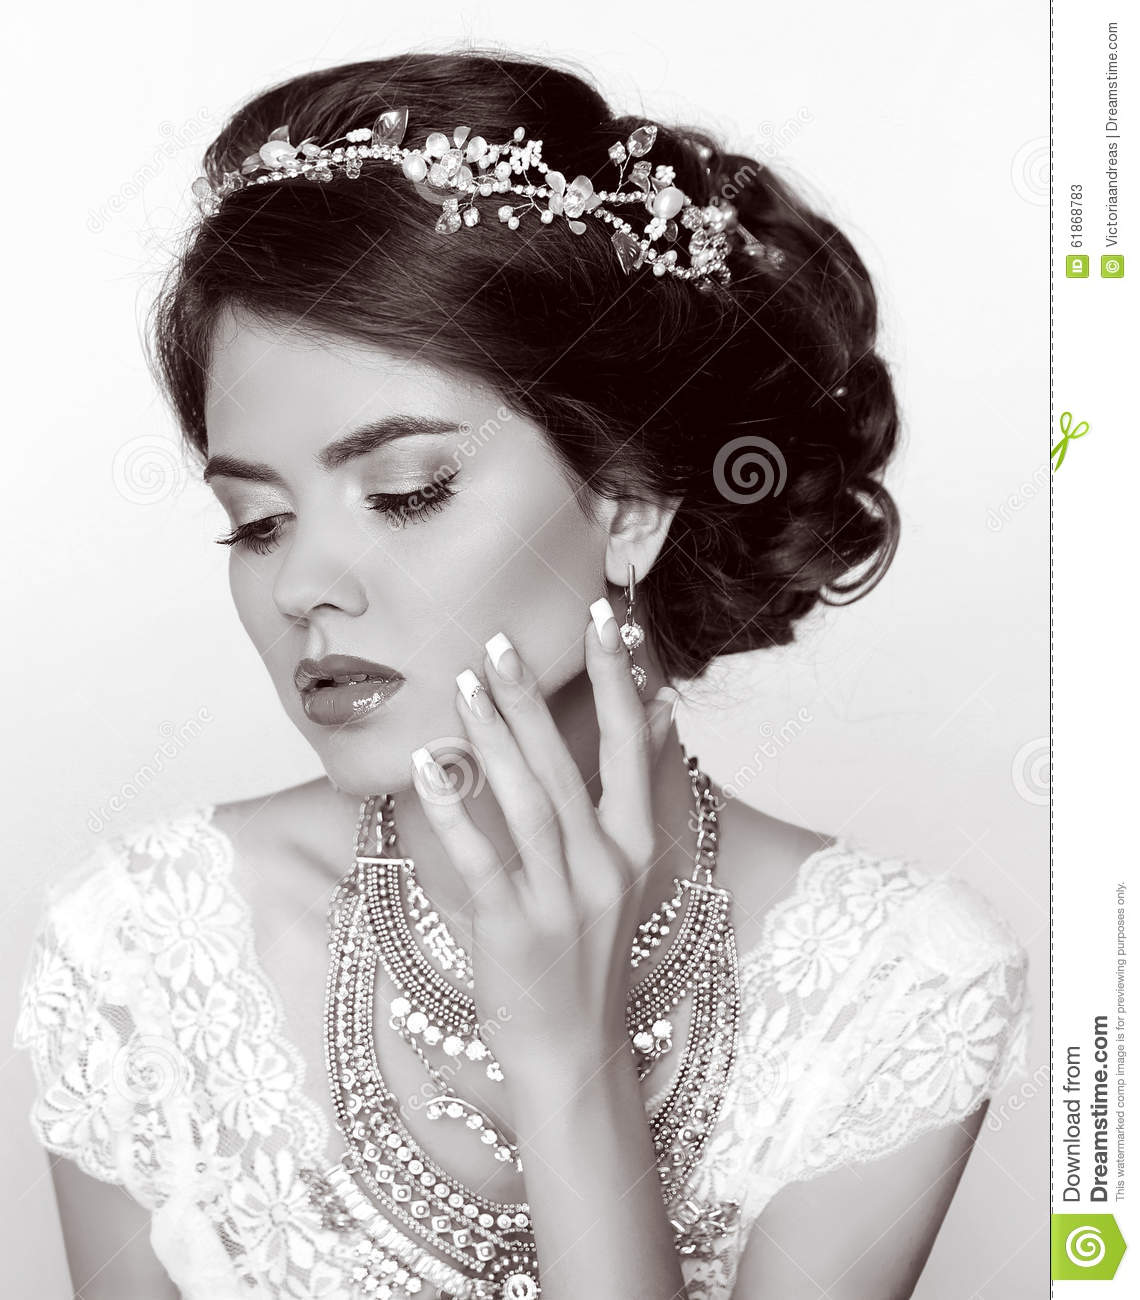 Retro woman. Beautiful bride with elegant hairstyle, with precious jewels, manicured nails. Makeup.